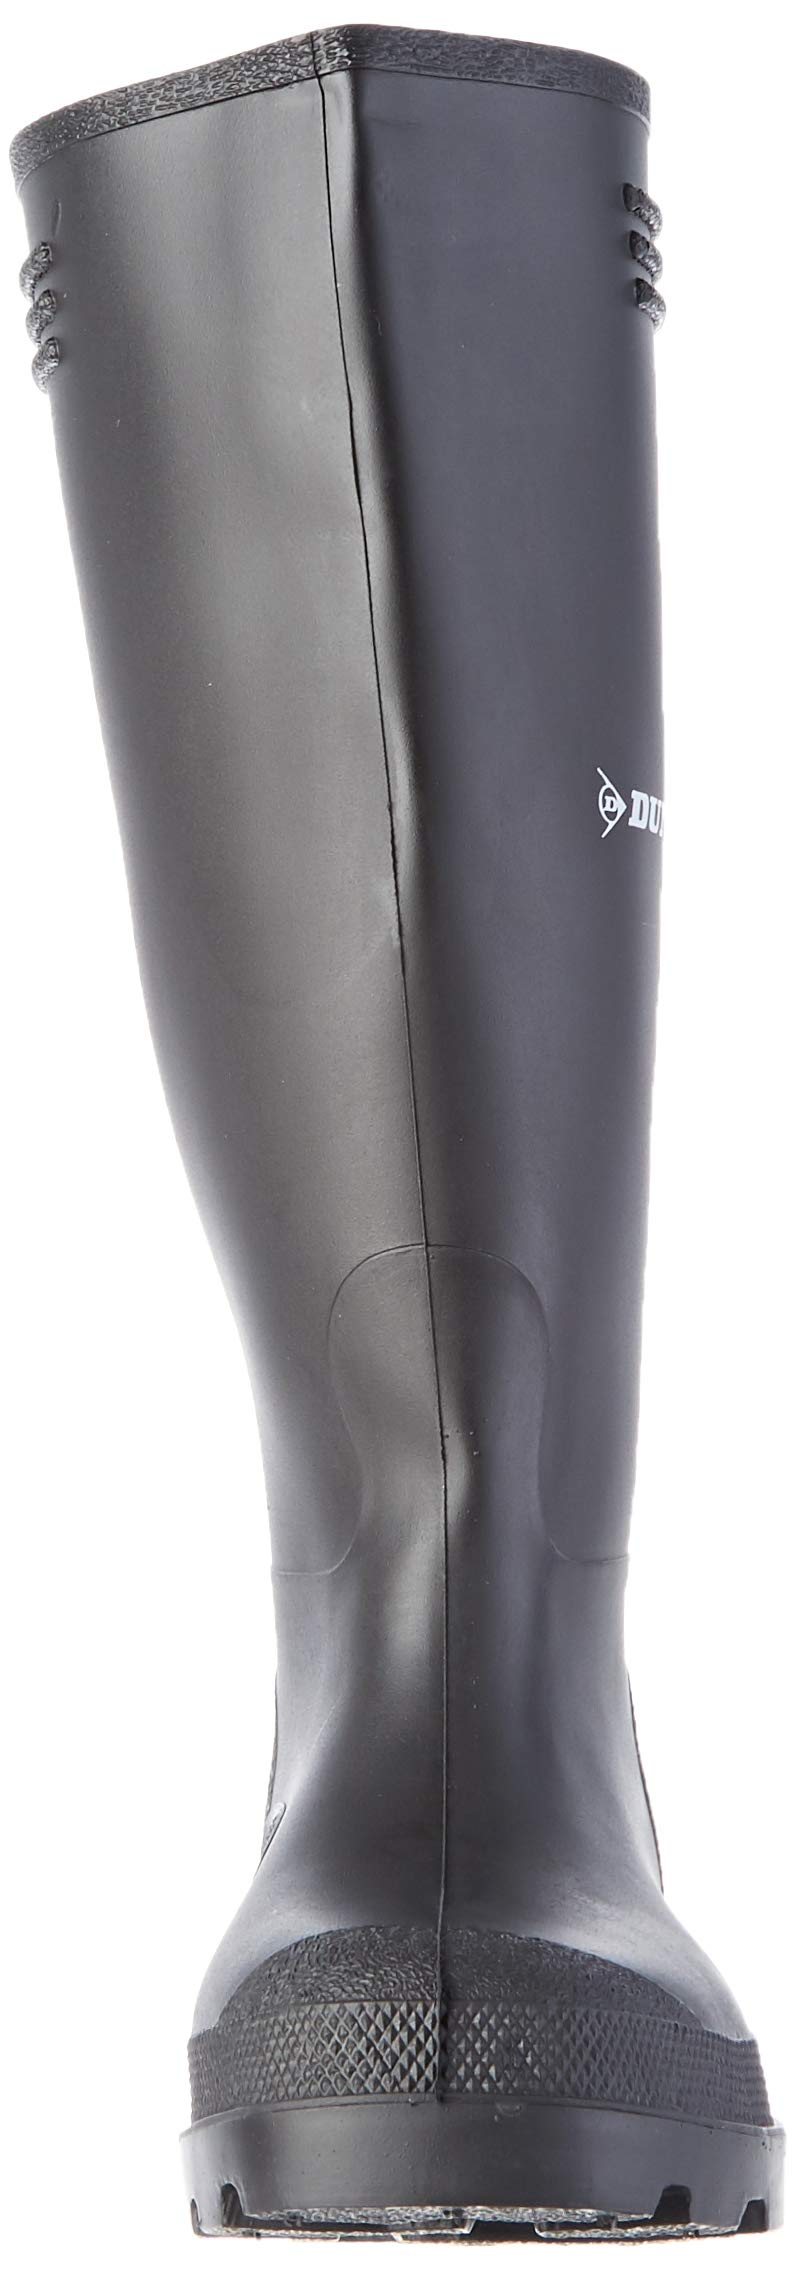 Dunlop Unisex Adult Pricemastor Wellington Boots 4